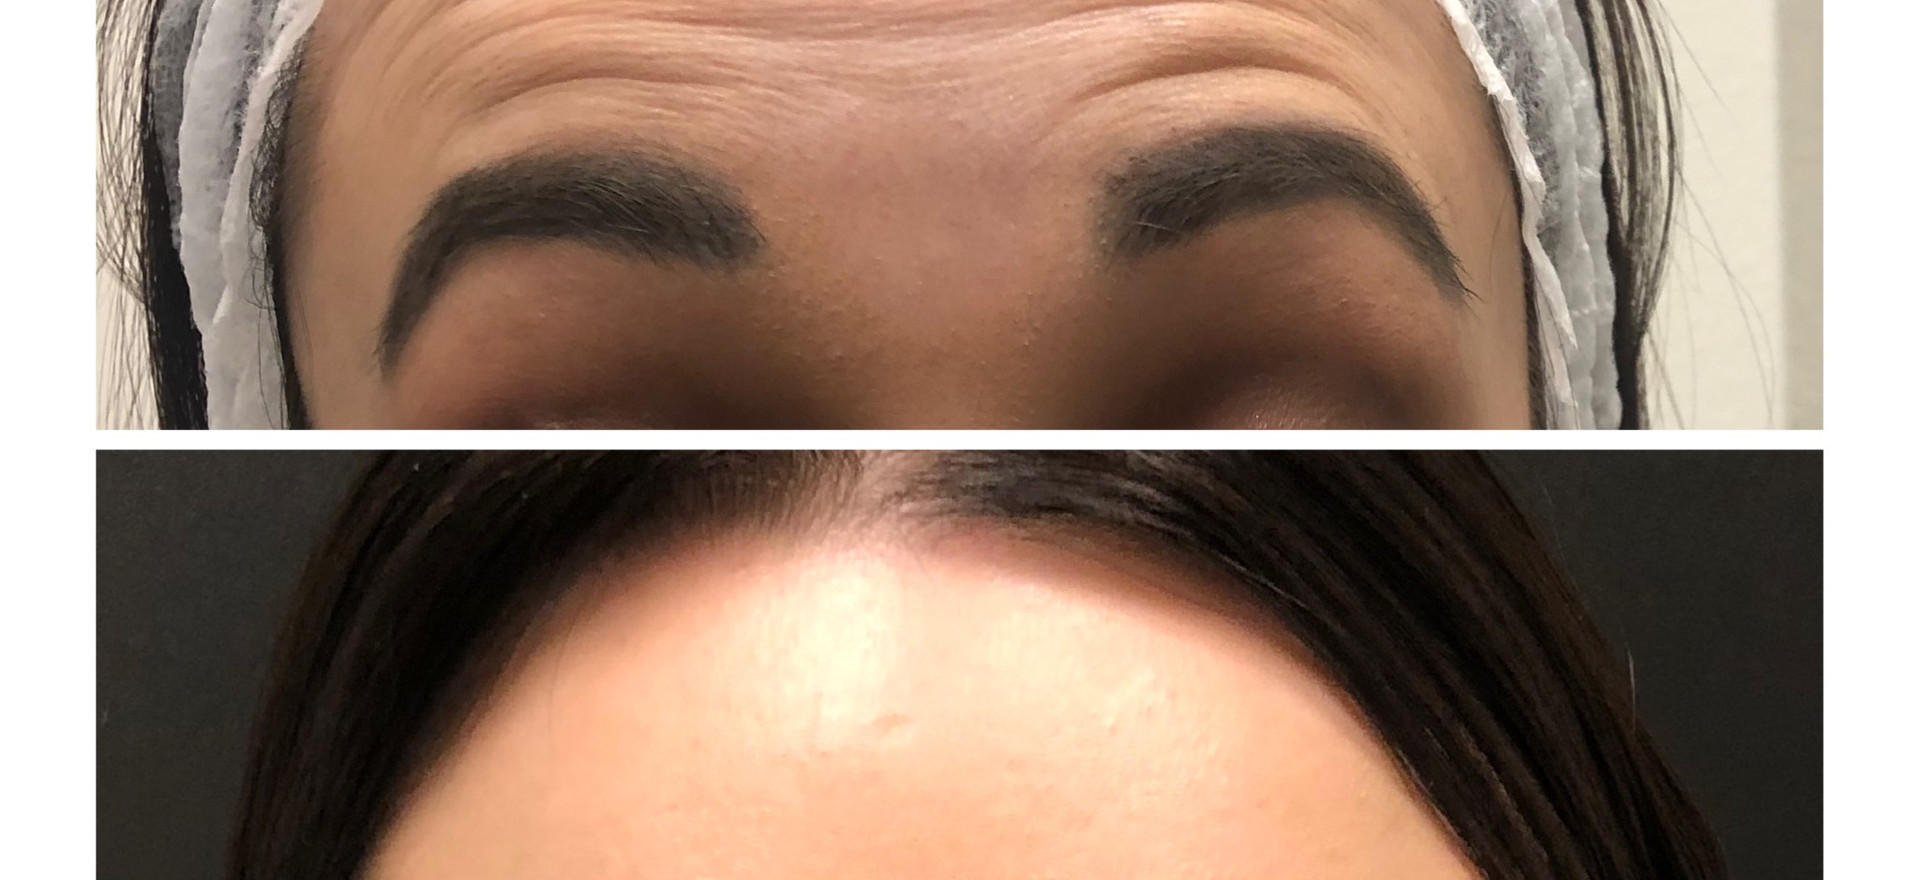 Baby Botox for the young client relaxes the muscles on the forehead (Frontalis) giving a clean smooth look.